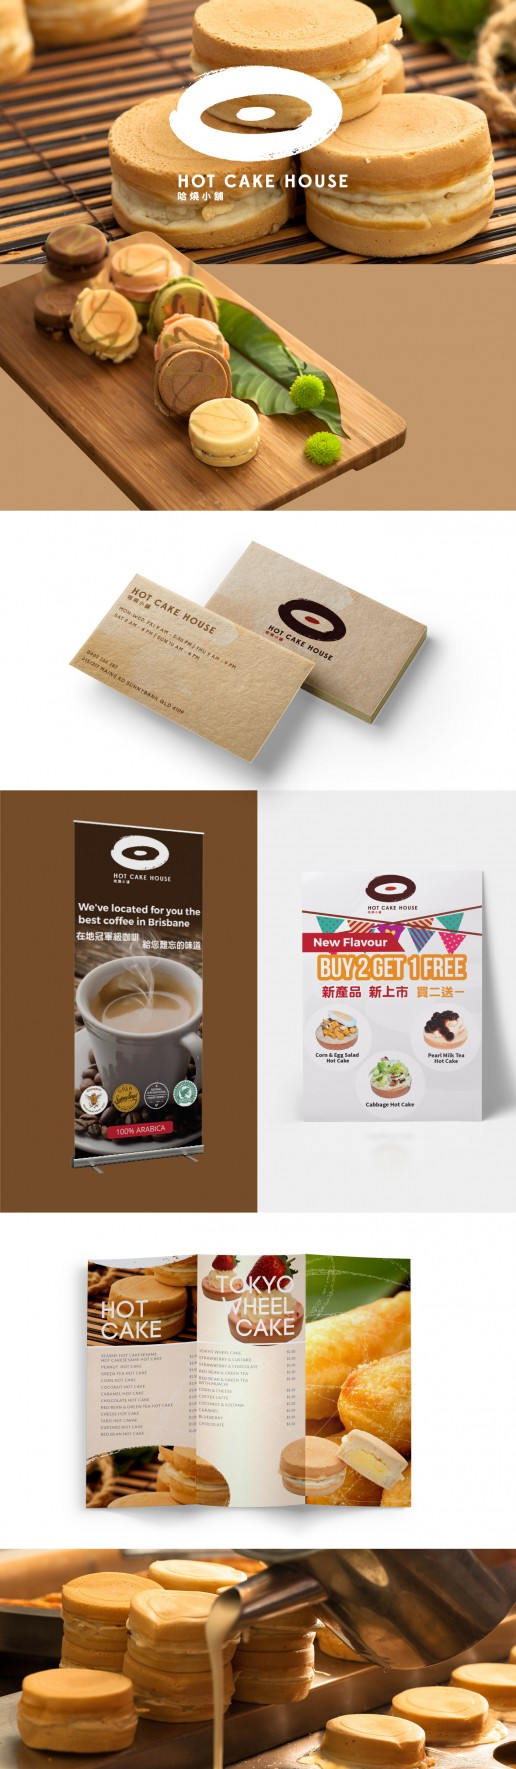 Image showing a preview of Hot Cake Houses business card, banners, posters and food menu that Elites Wave designed.